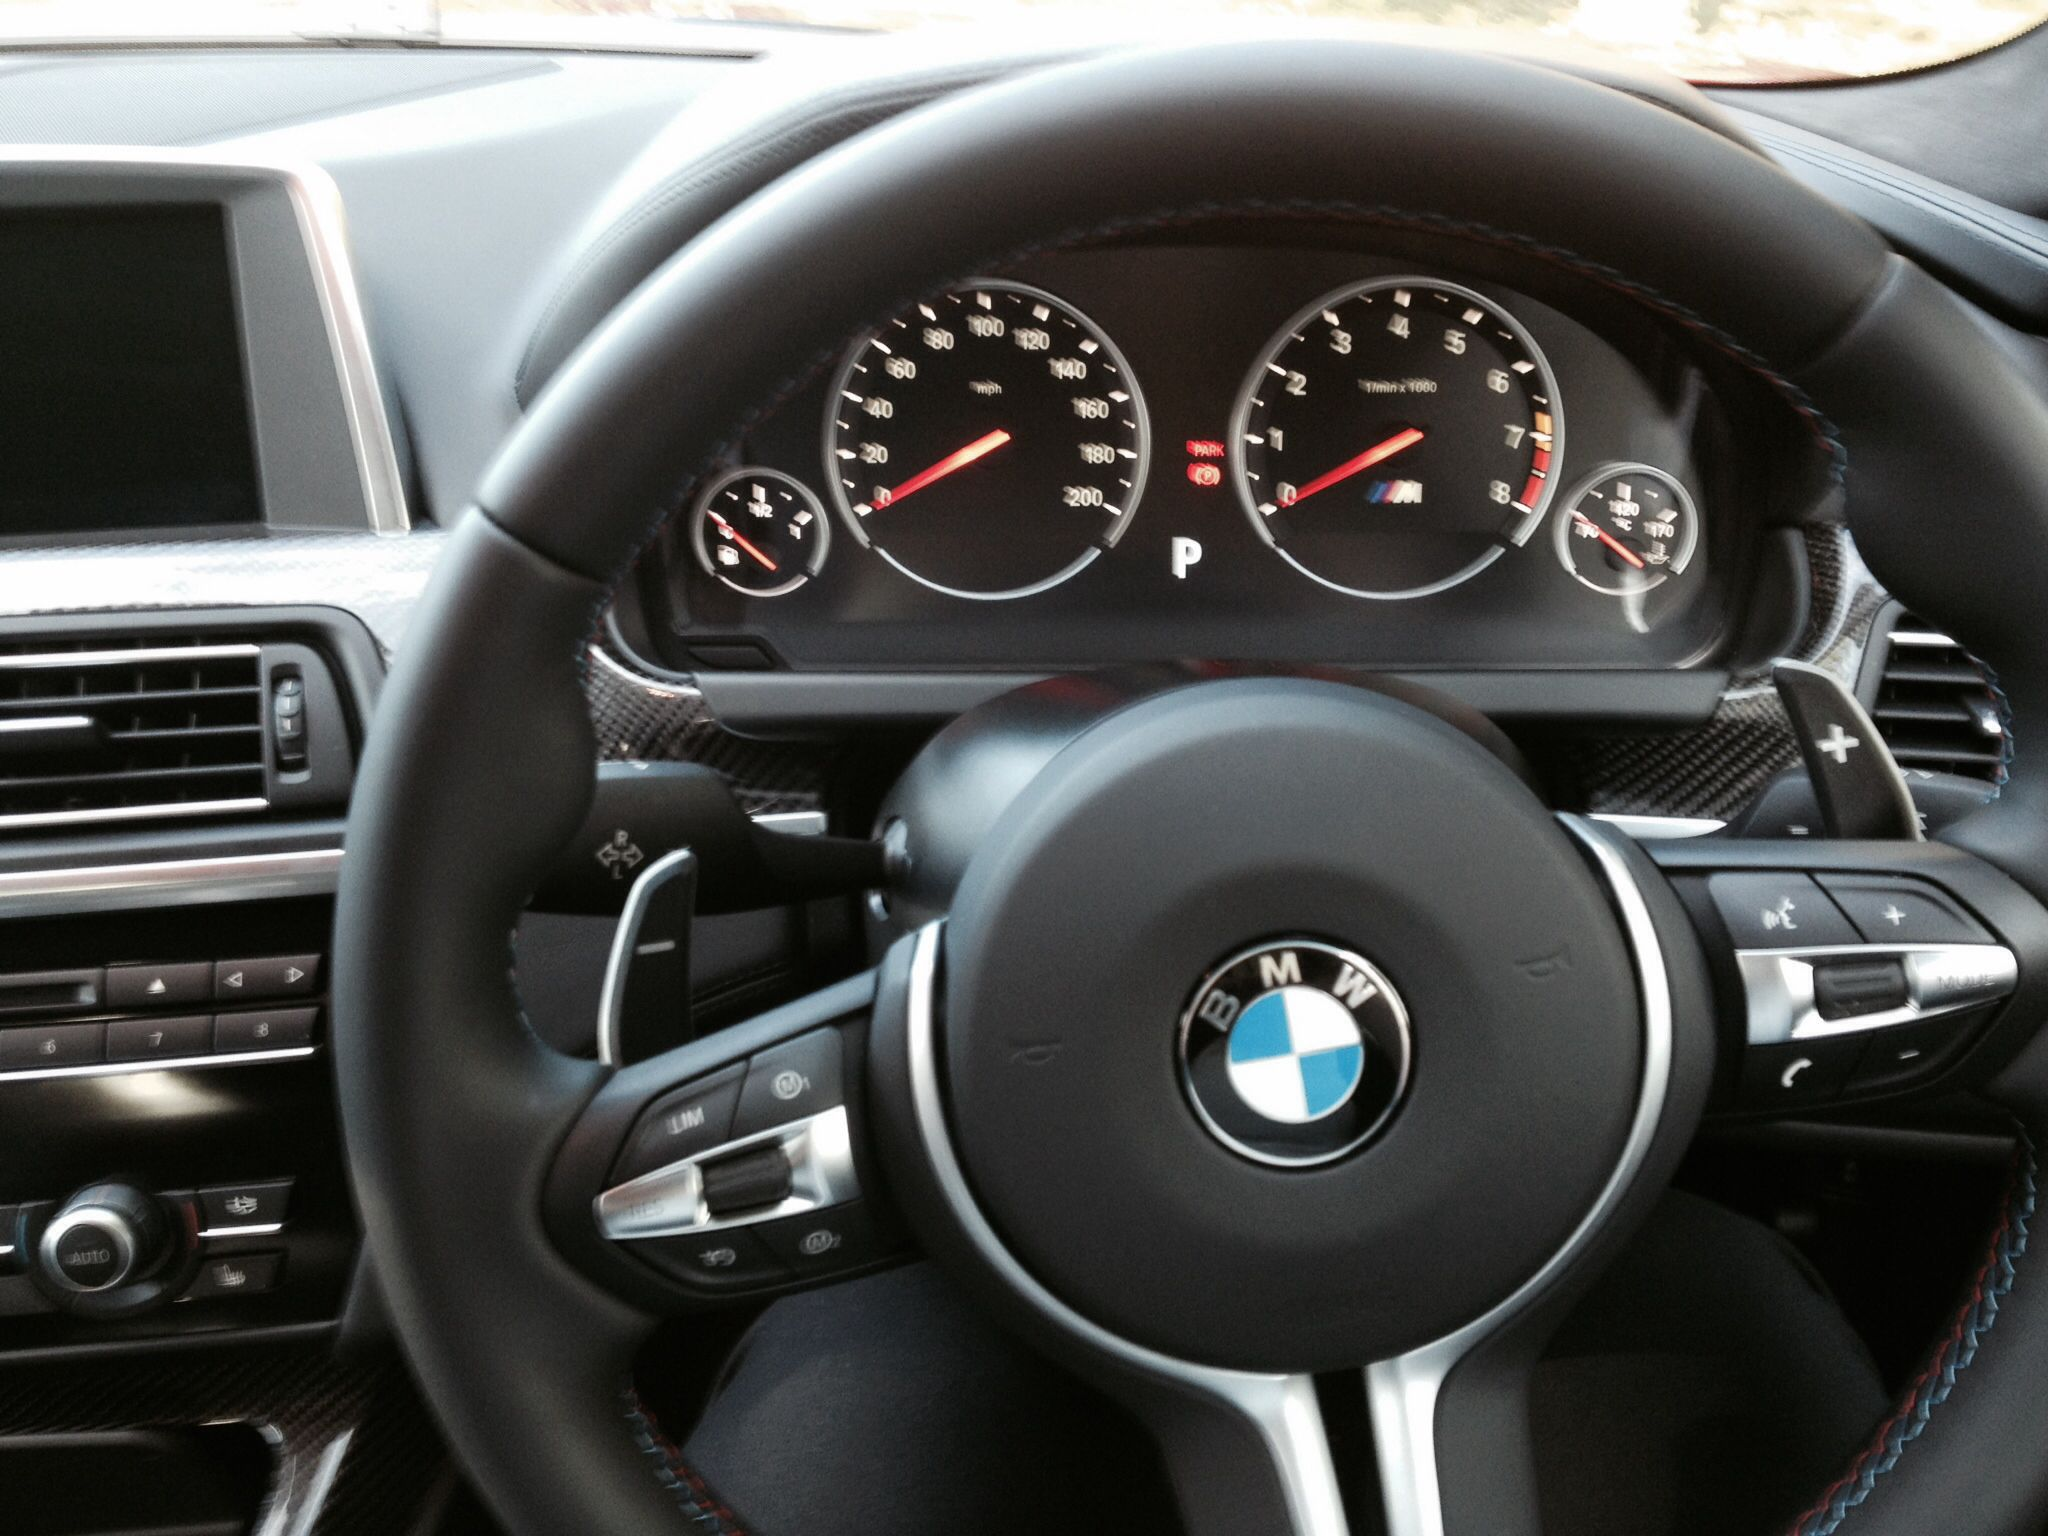 Instrument Cer And M Sport Steering Wheel In The M6 8 Sd Double Clutch Gear Box Was A Dream Meaning You Can Drop Gears Down Get